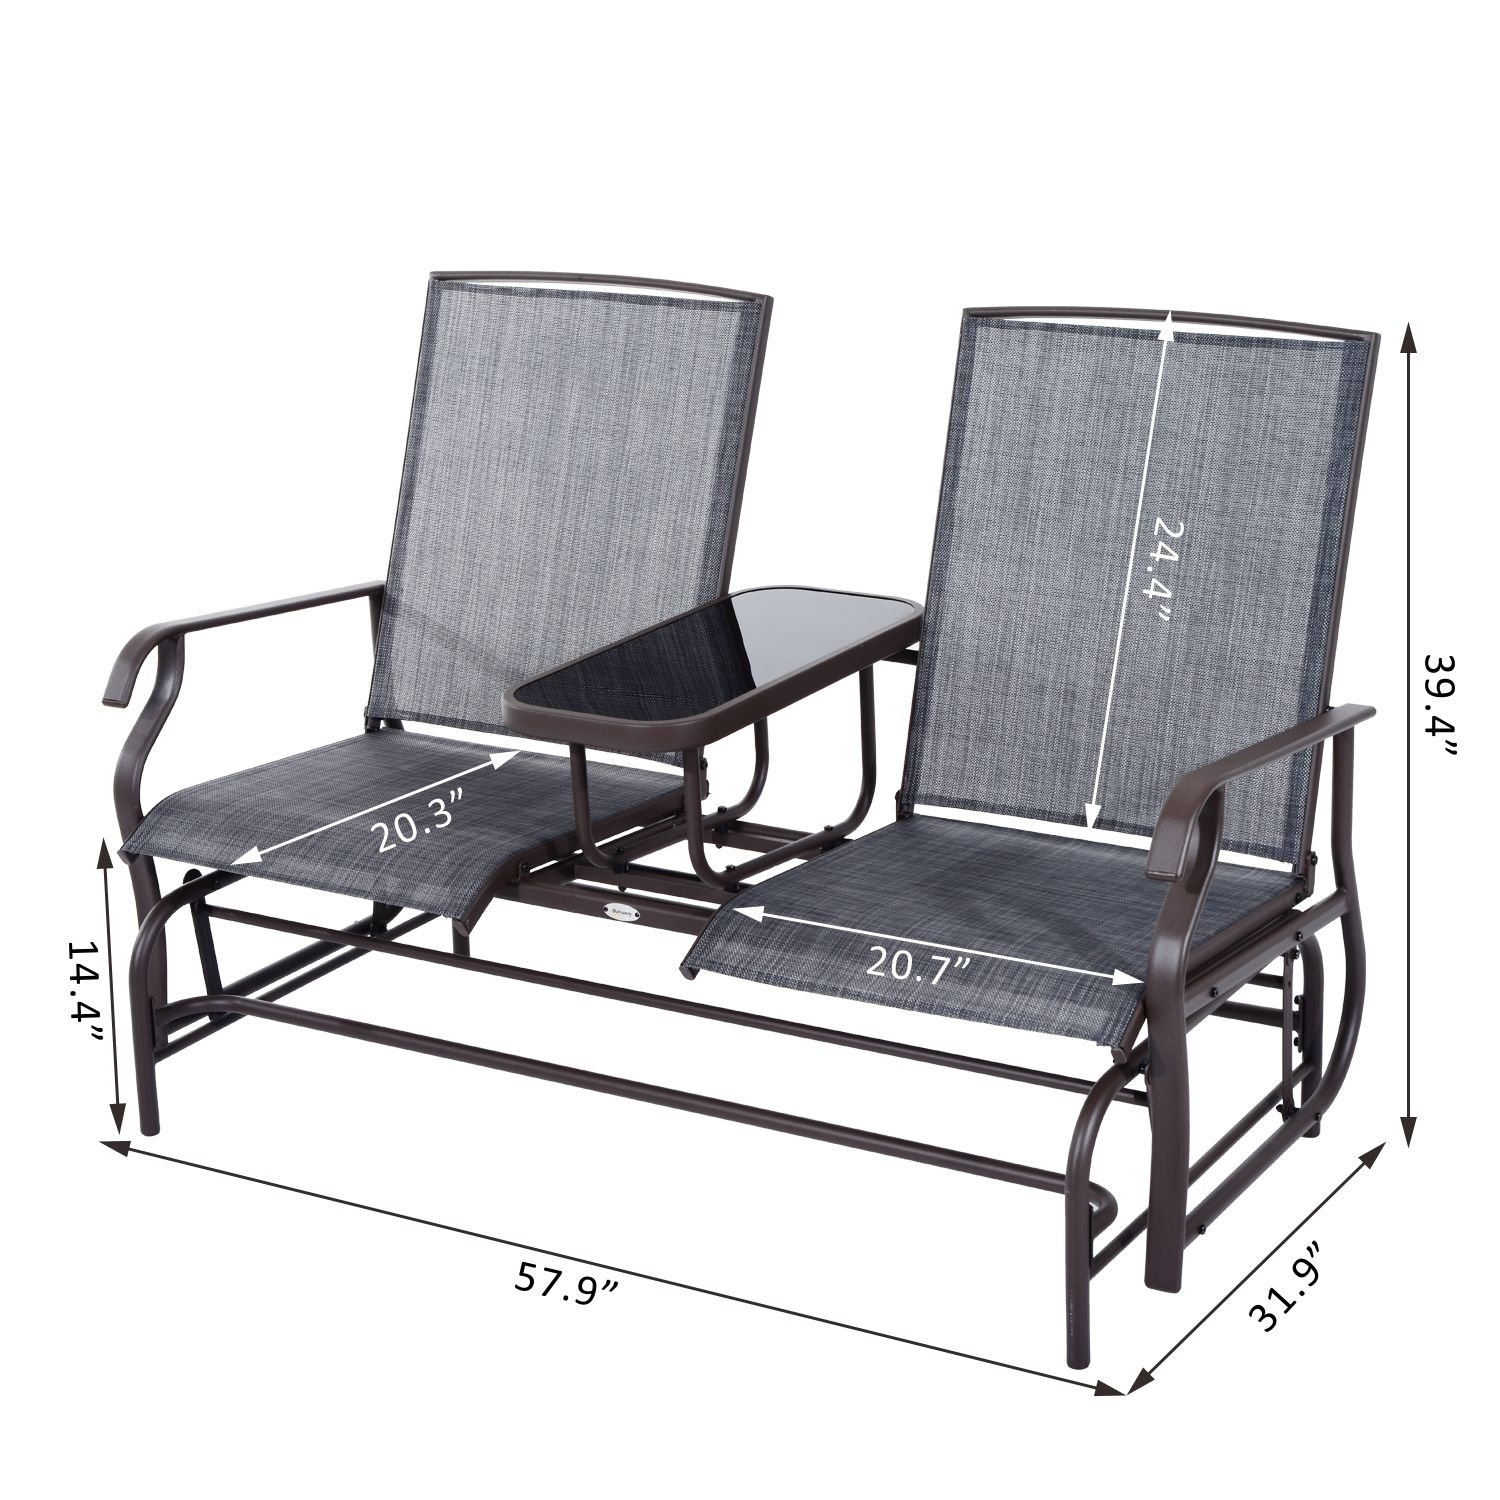 Elegant Patio Glider Chair Outsunny 2 Seater Patio Glider Rocking Throughout Patio Rocking Chairs And Gliders (#6 of 15)